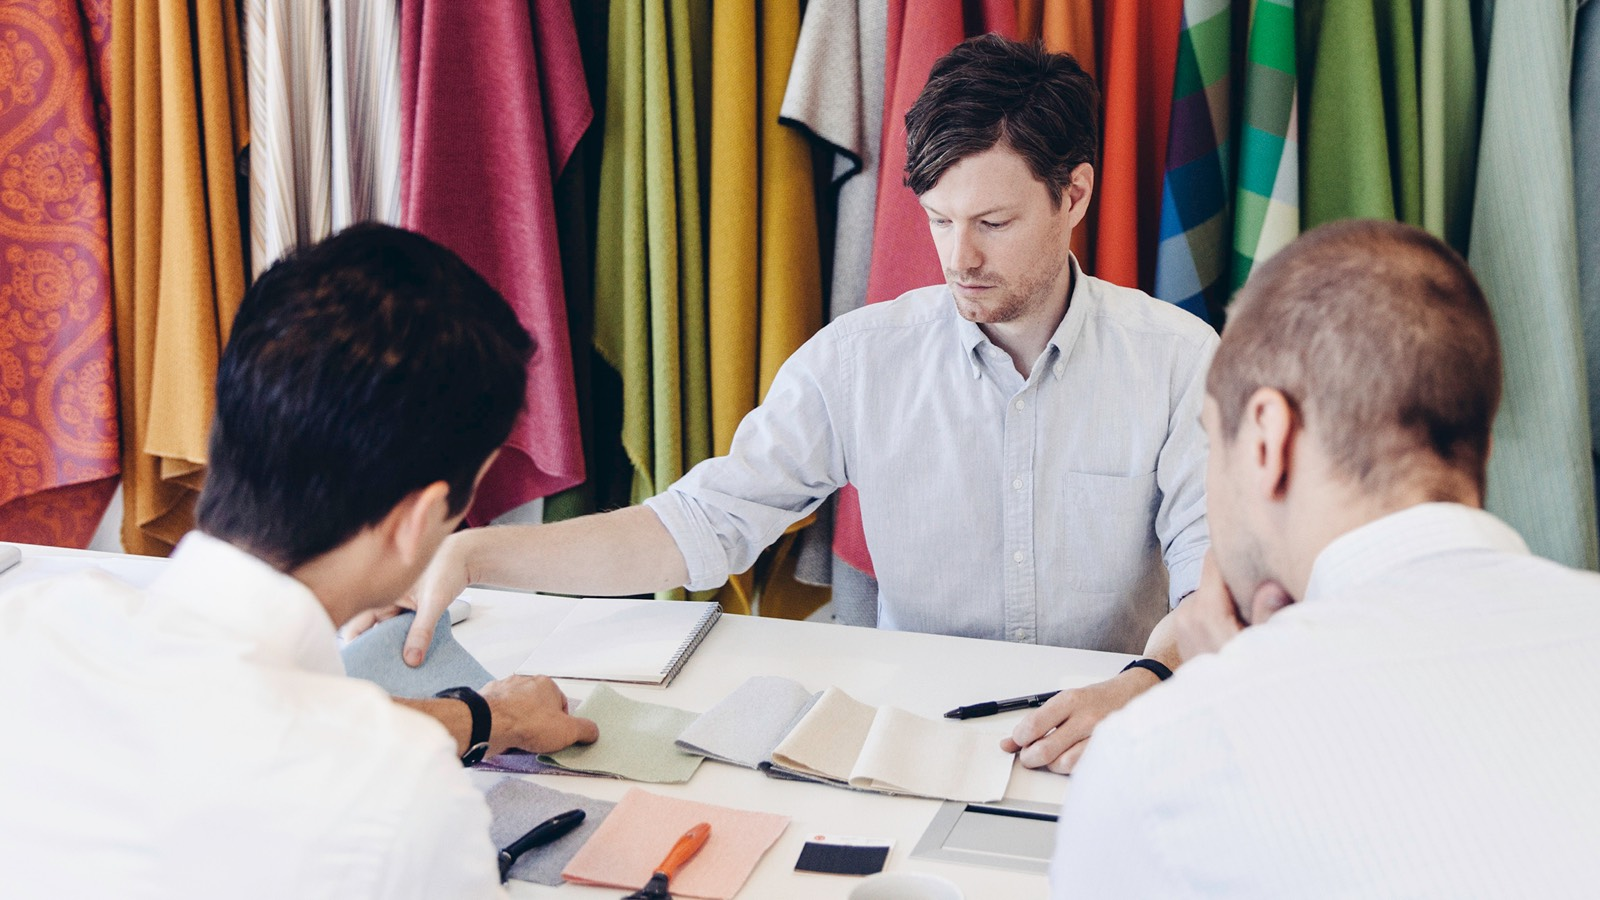 Four seated men review fabric samples.